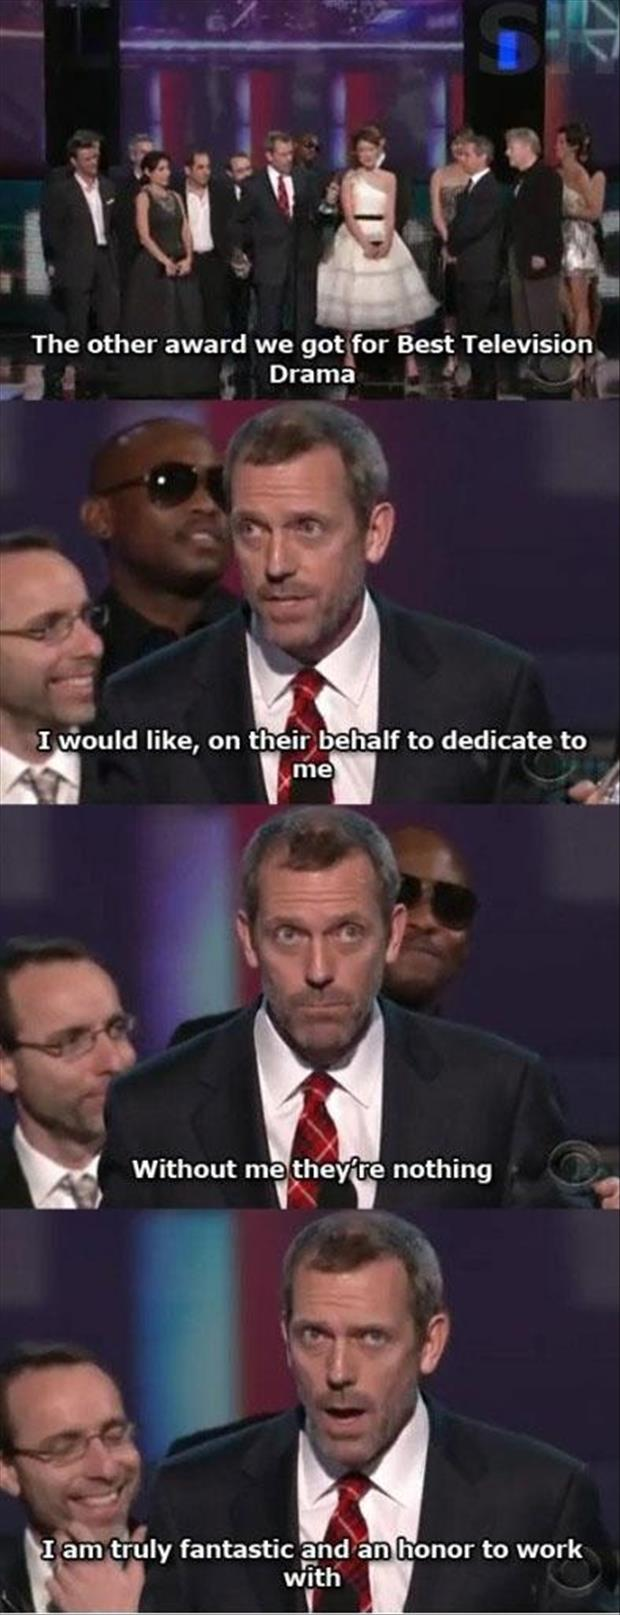 Hugh Laurie speech